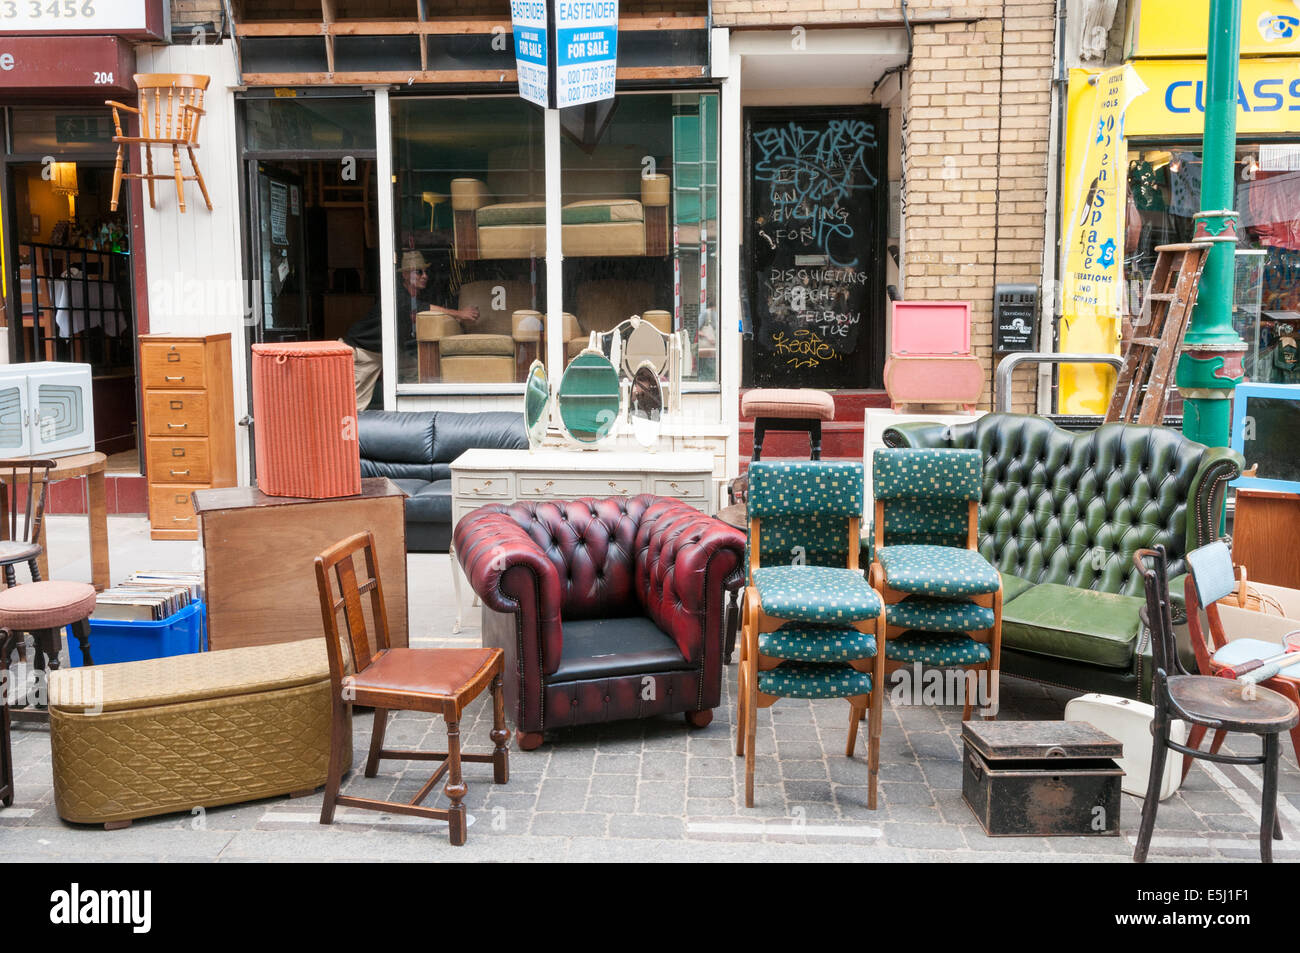 https www alamy com stock photo second hand used furniture for sale on brick lane tower hamlets london 72311093 html